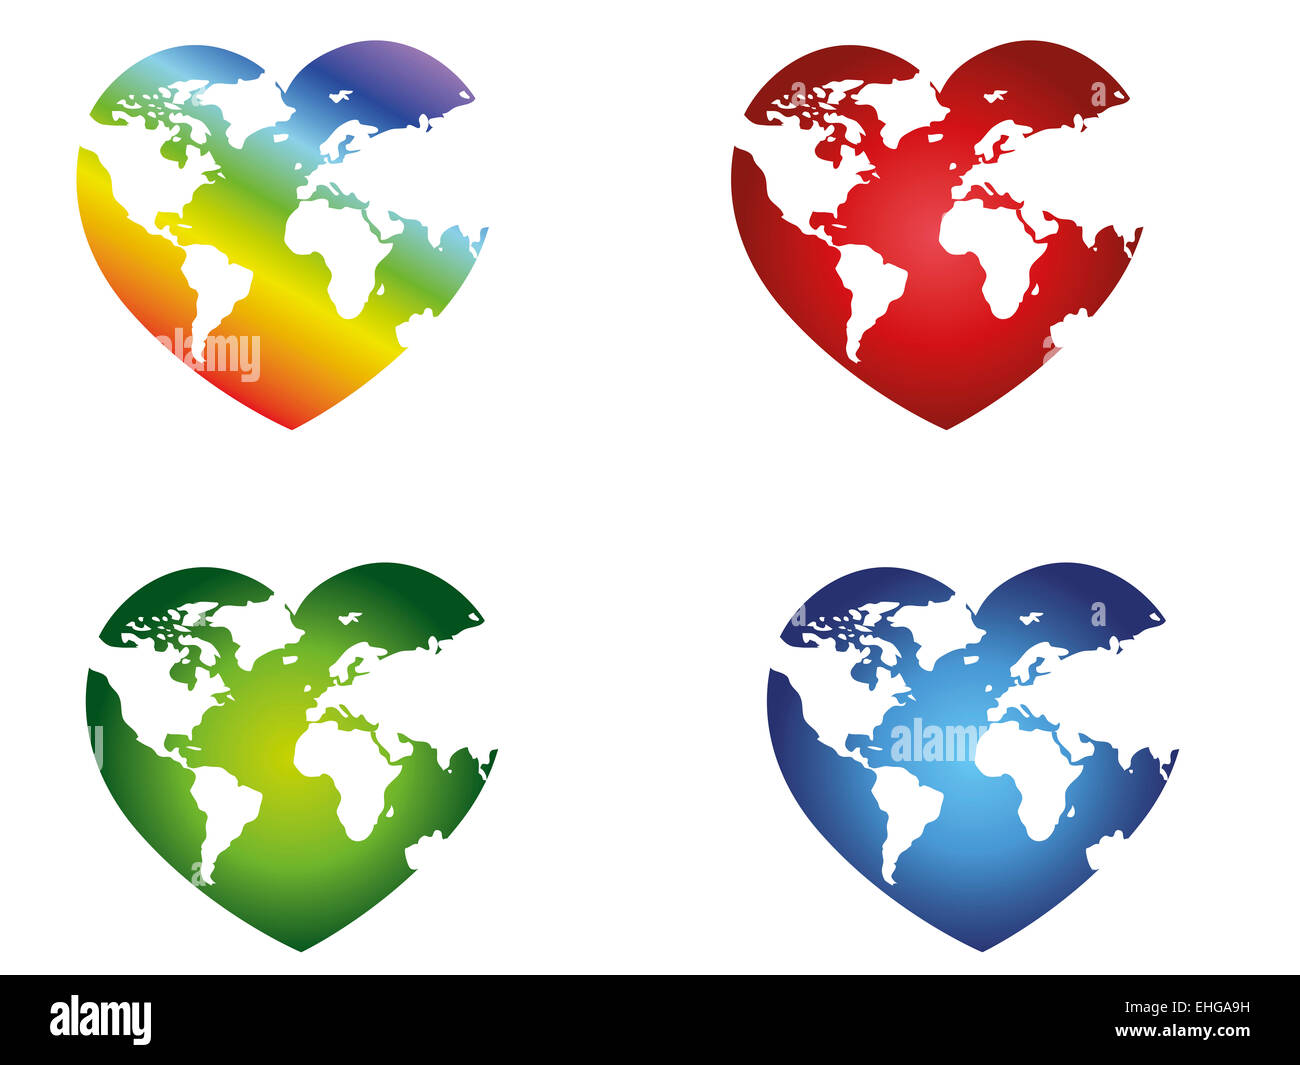 Illustration of different world map heart shaped stock photo illustration of different world map heart shaped gumiabroncs Gallery